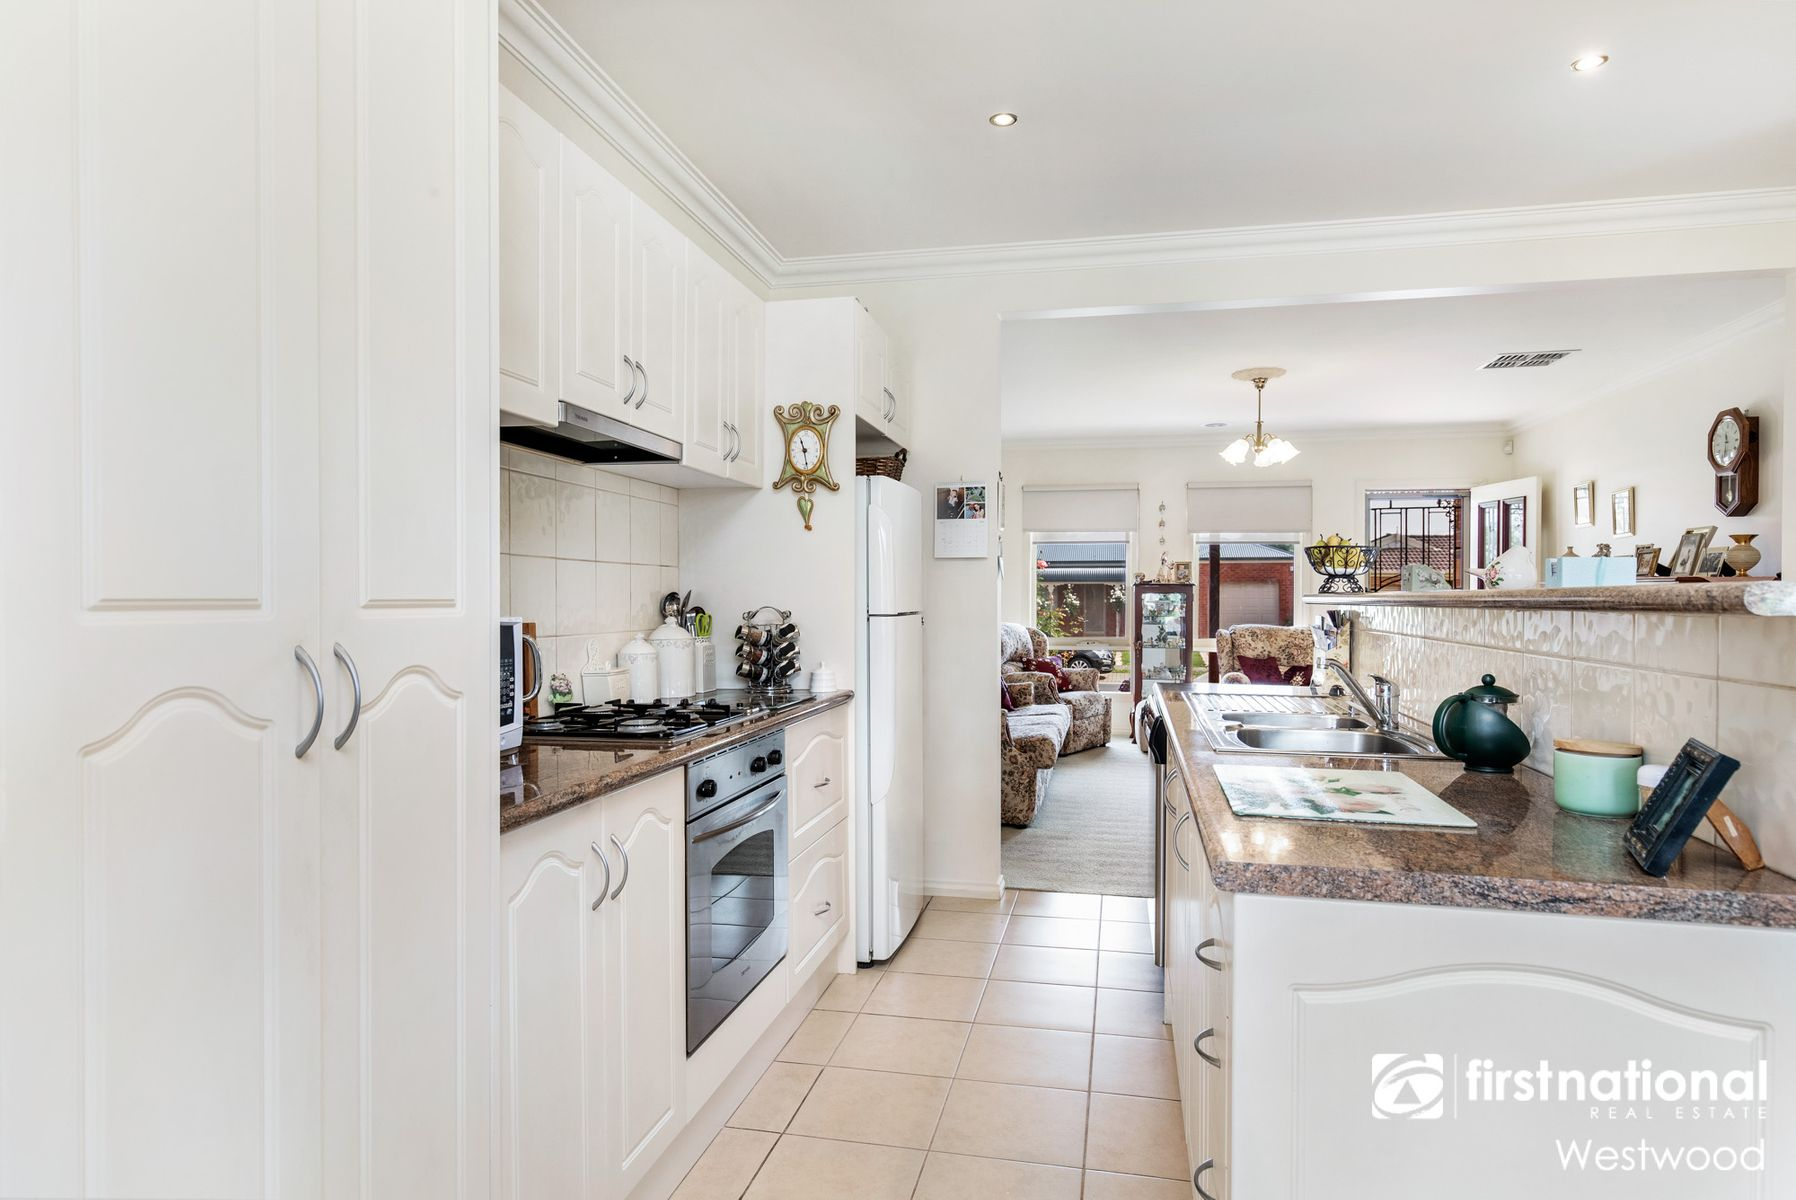 12 Stella Way, Hoppers Crossing, VIC 3029